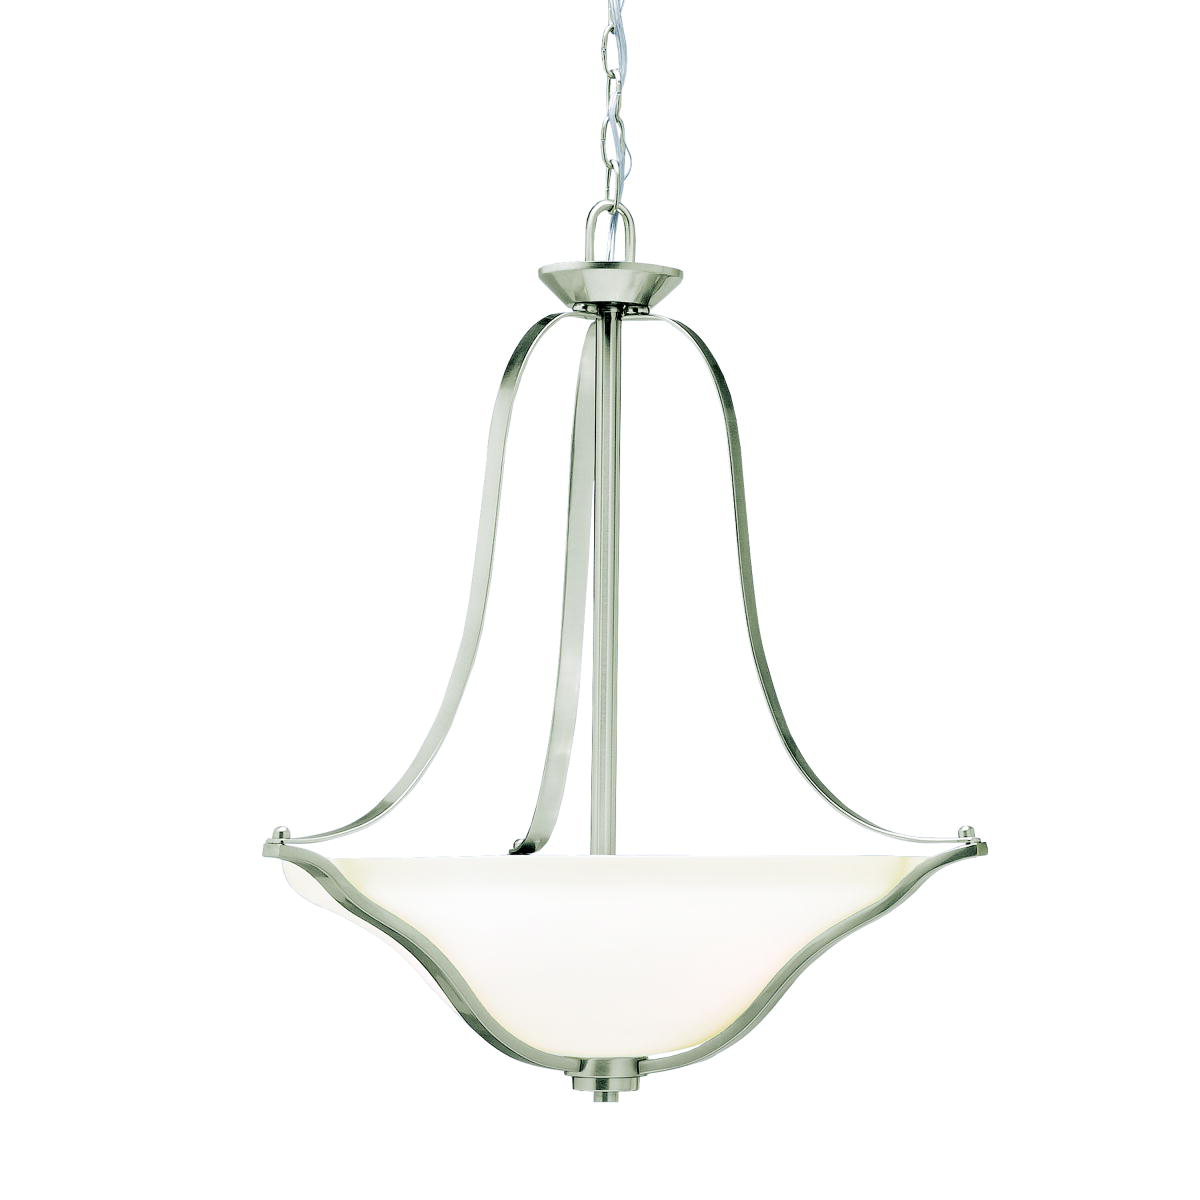 Kichler Brushed Nickel Langford 3-Bulb Indoor Pendant With Bowl-Shaped Glass Shade